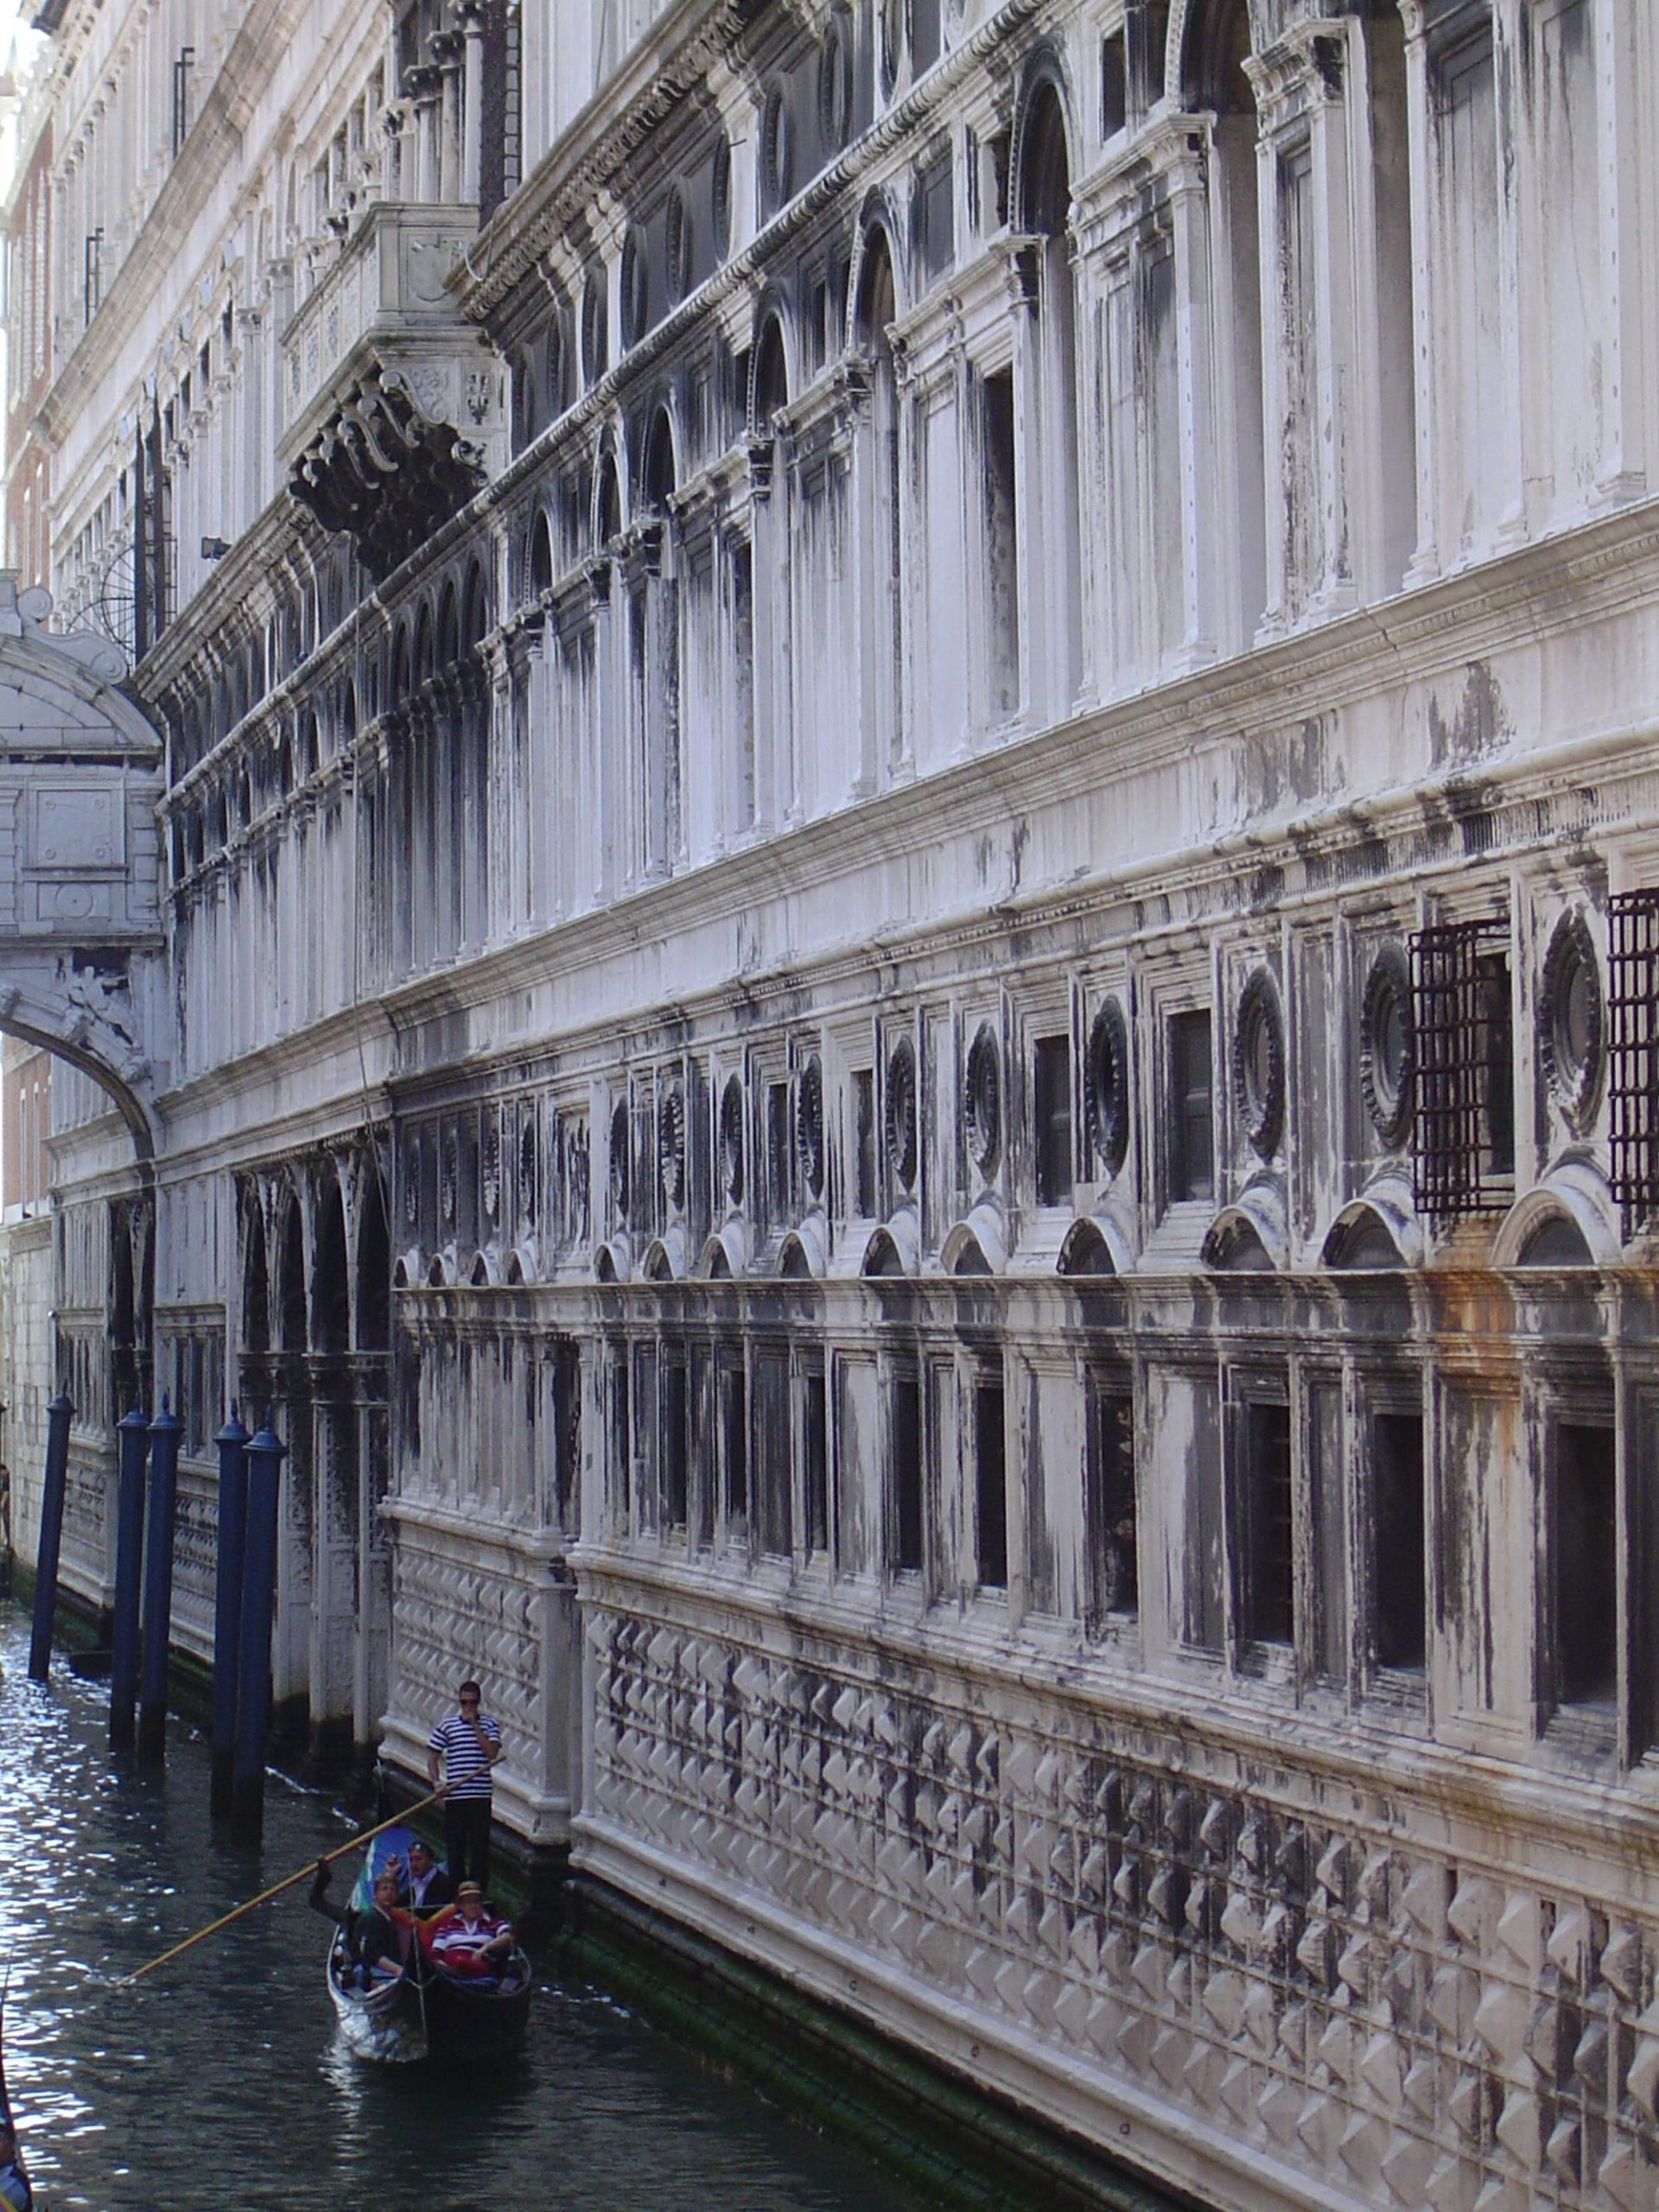 Book review: John Ruskin and the Fabric of Architecture authored by Anuradha Chatterjee 3